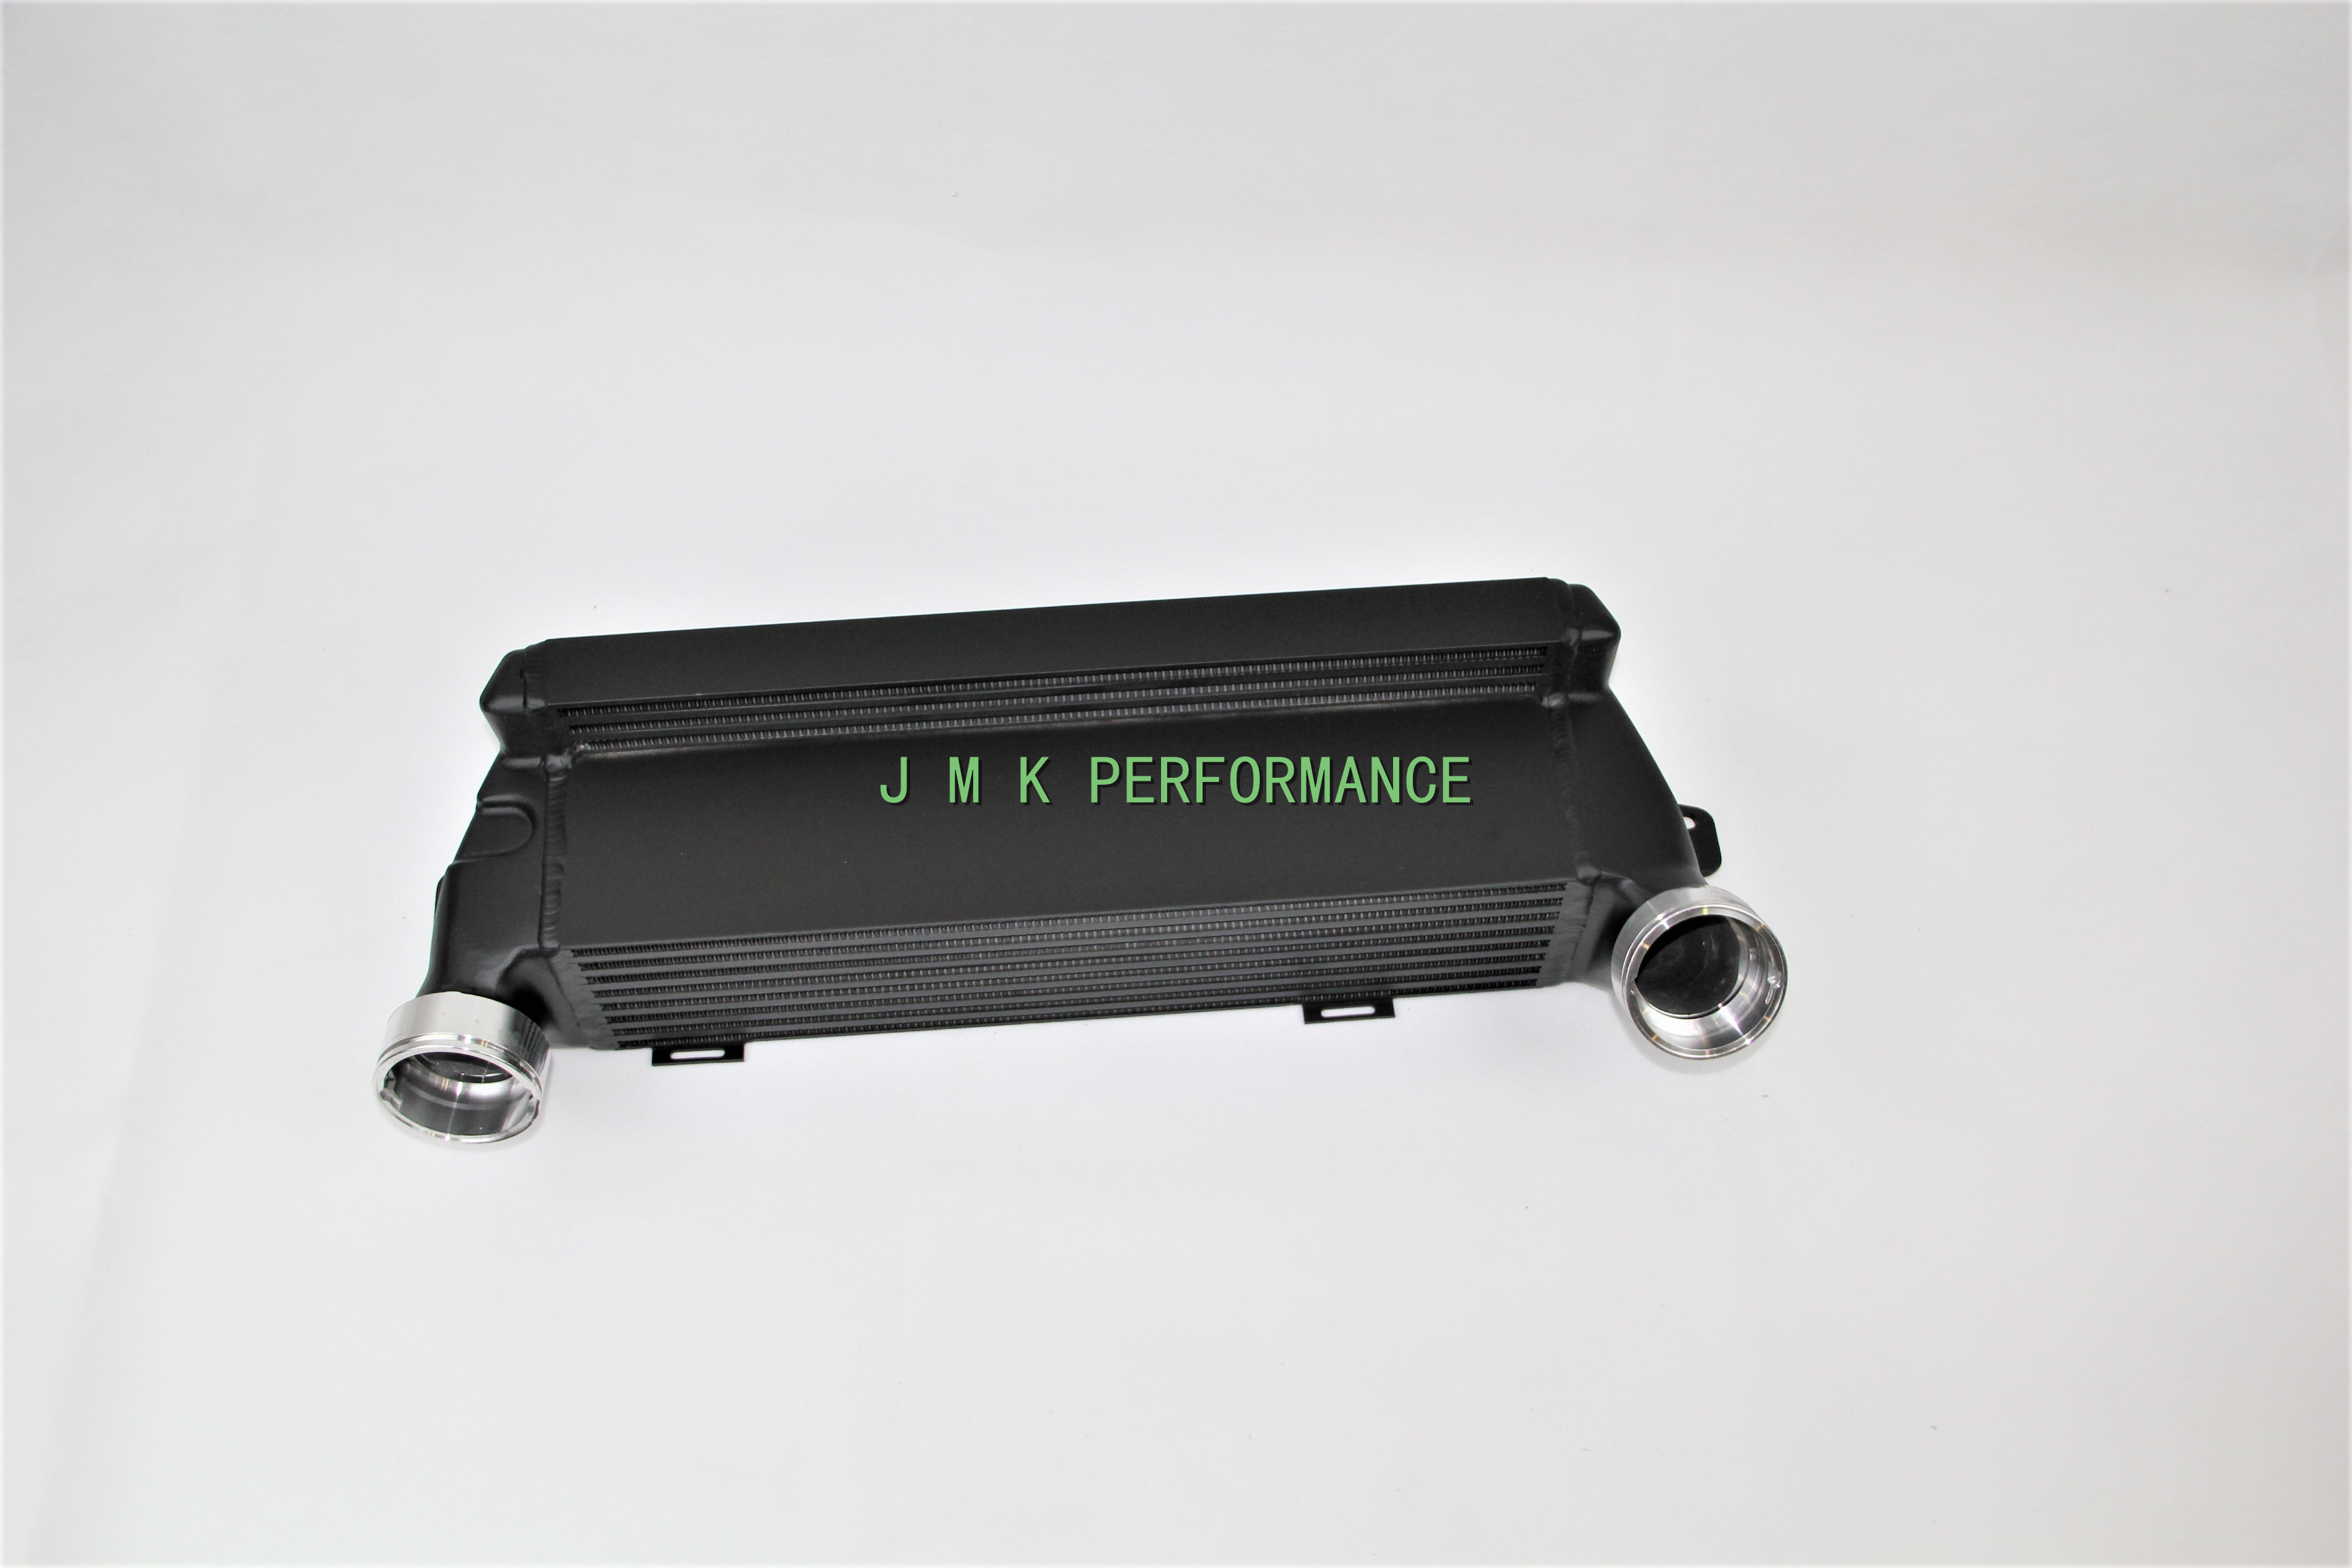 high performance <font><b>INTERCOOLER</b></font> FOR BMW E90 E81 E92 D91 E92 <font><b>N54</b></font> N55 <font><b>335I</b></font> 1m image